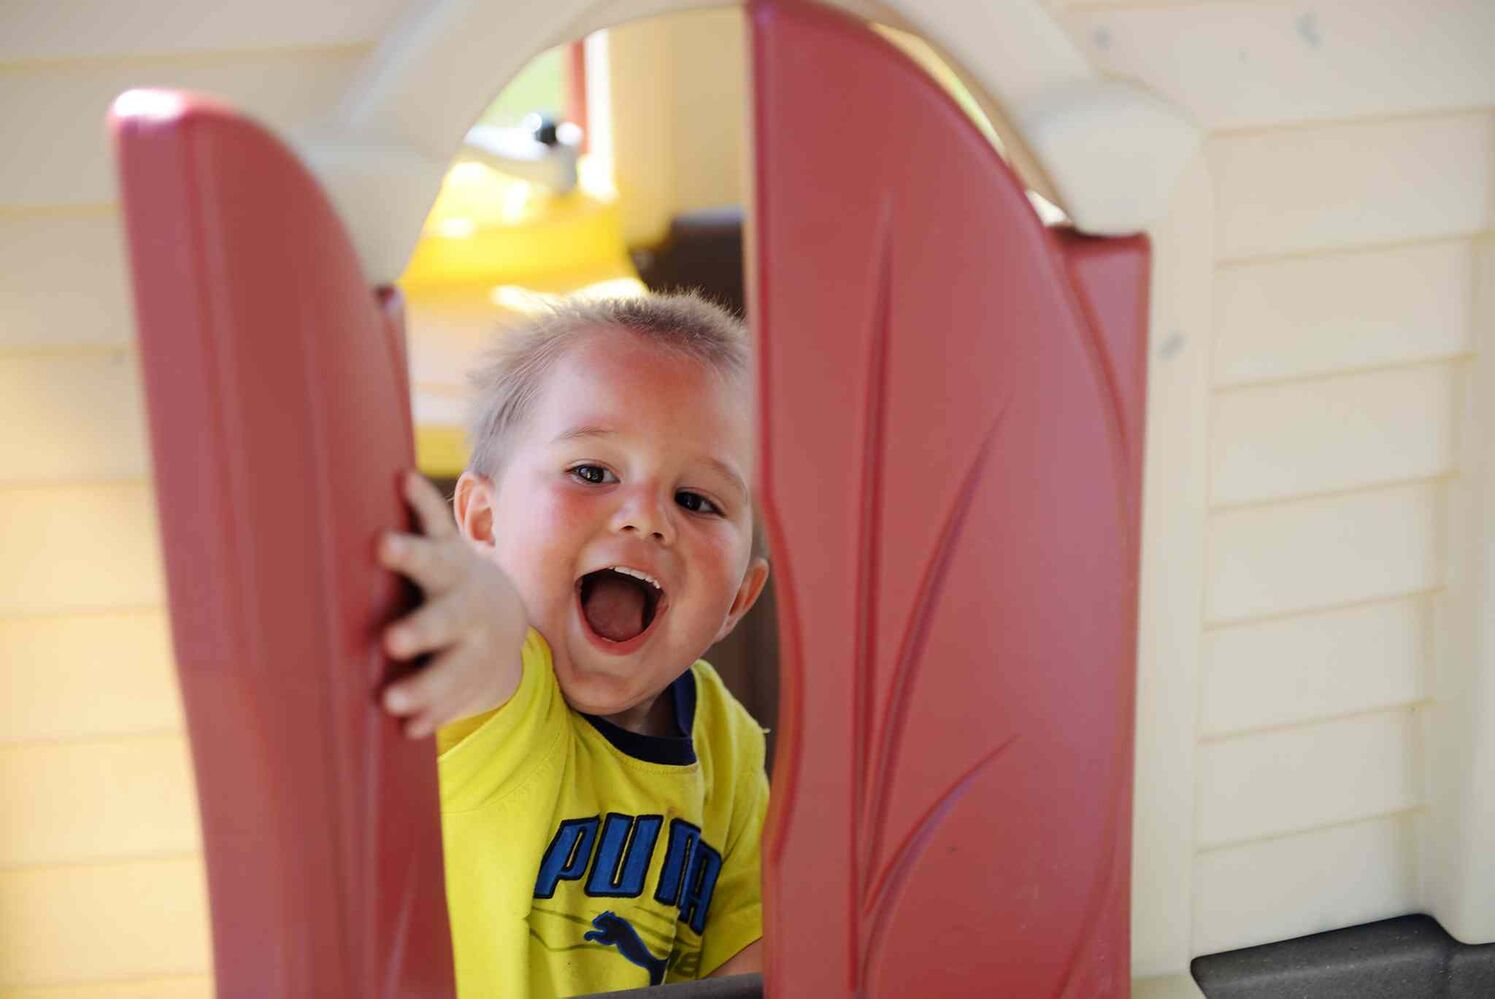 Liam Brooker, 1, plays at the Ex for the first time.  (Sarah Taylor / Winnipeg Free Press)